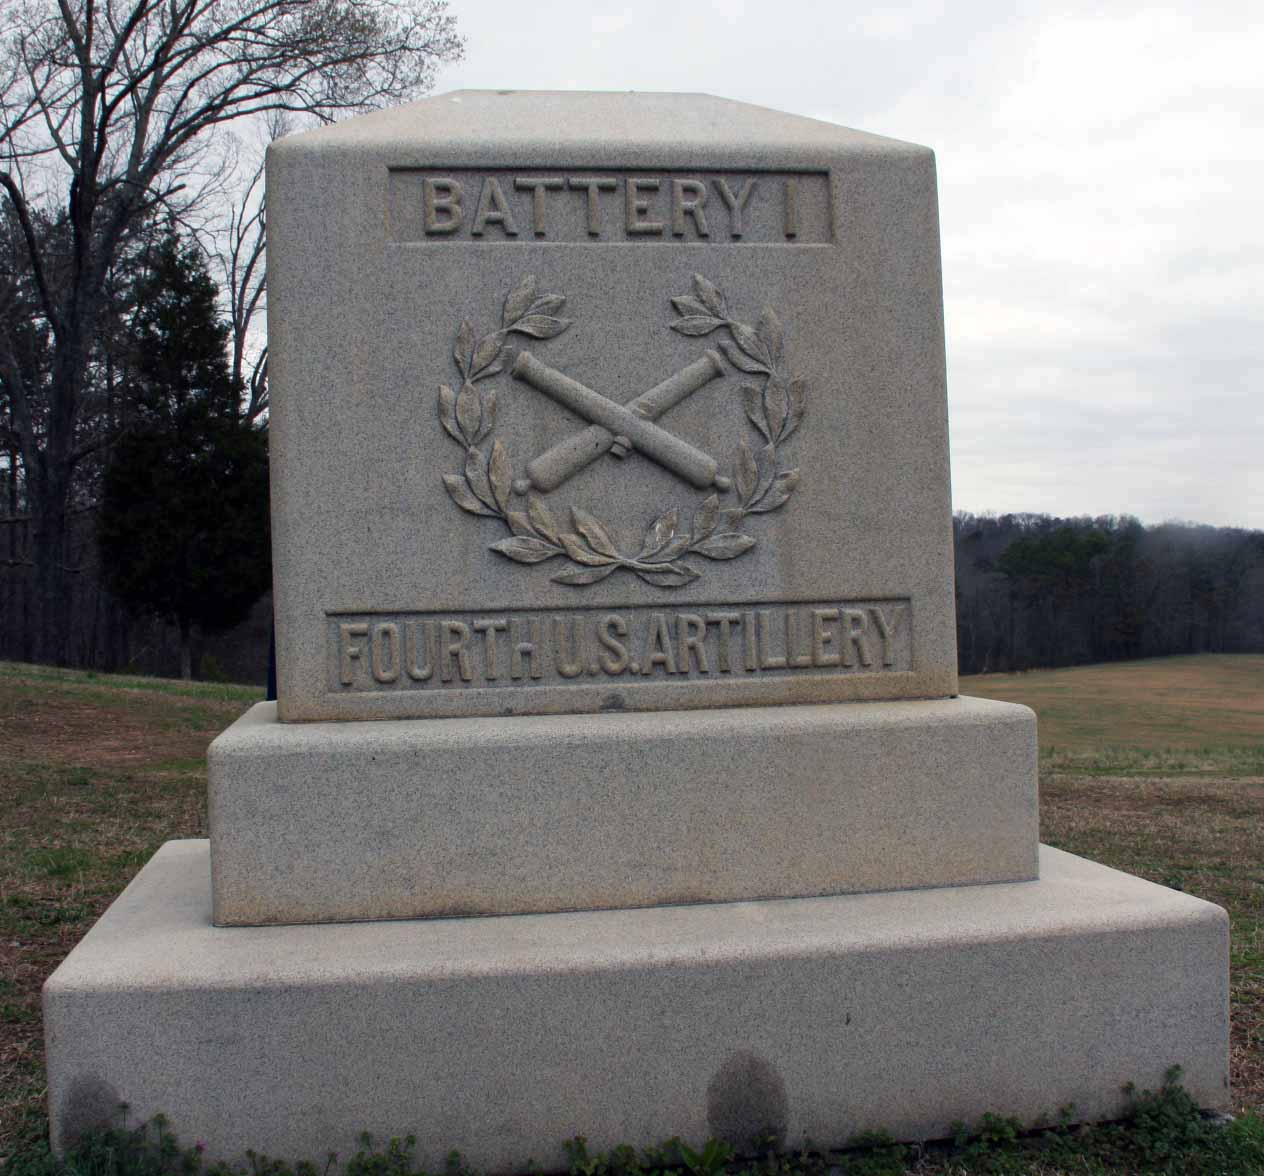 4th U.S. Artillery, Battery I, Monument, click photo to enlarge.